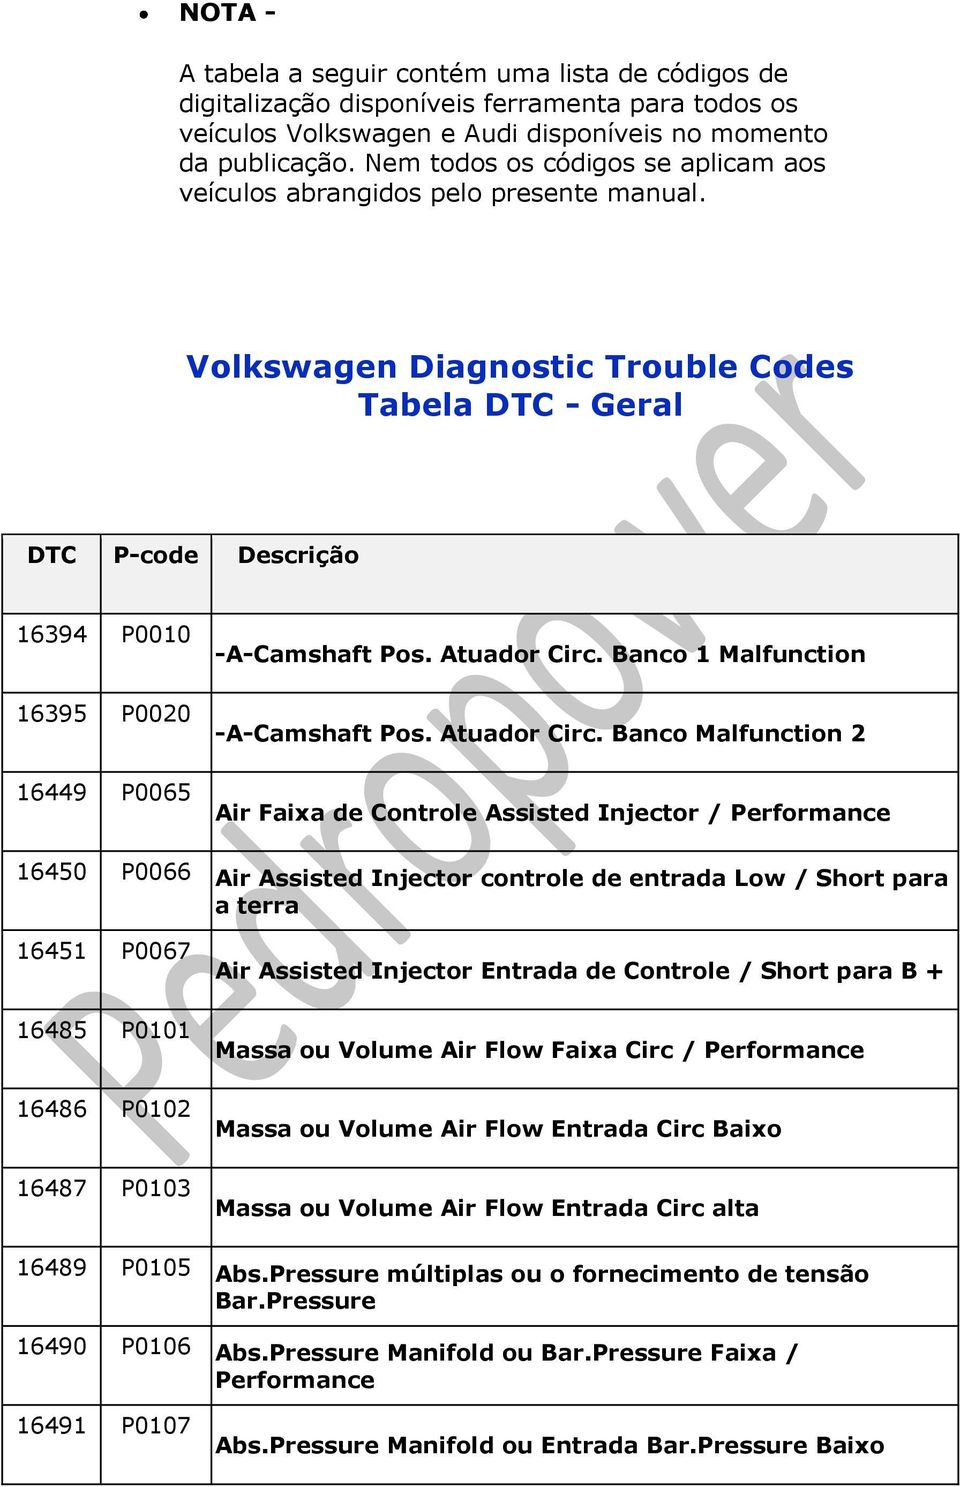 Volkswagen Diagnostic Trouble Codes Tabela DTC - Geral - PDF